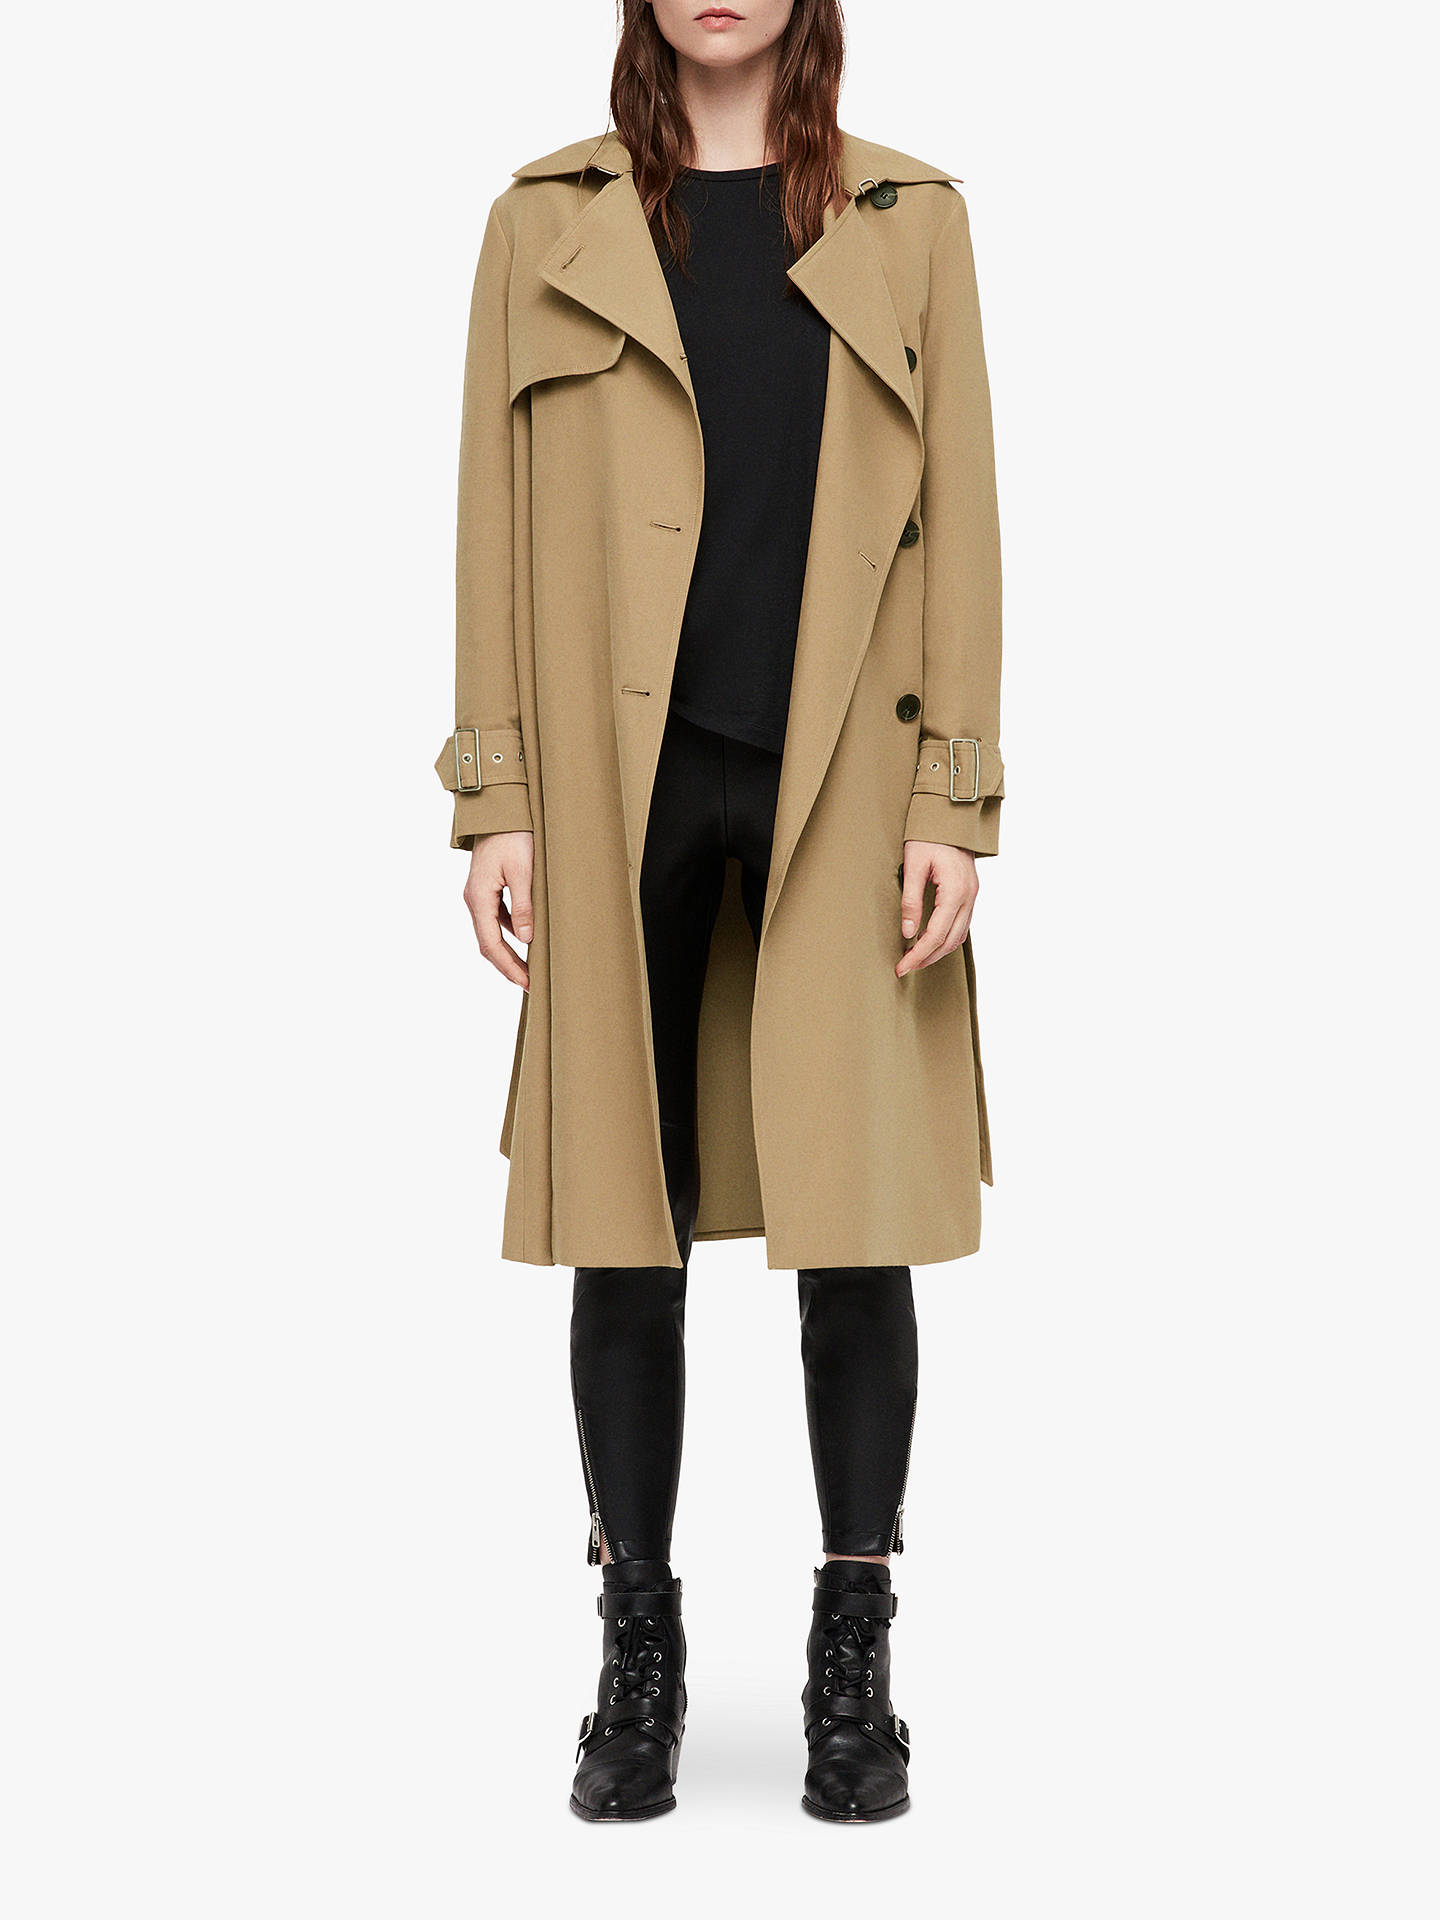 BuyAllSaints Myla Trench Coat, Tawny Brown, L Online at johnlewis.com